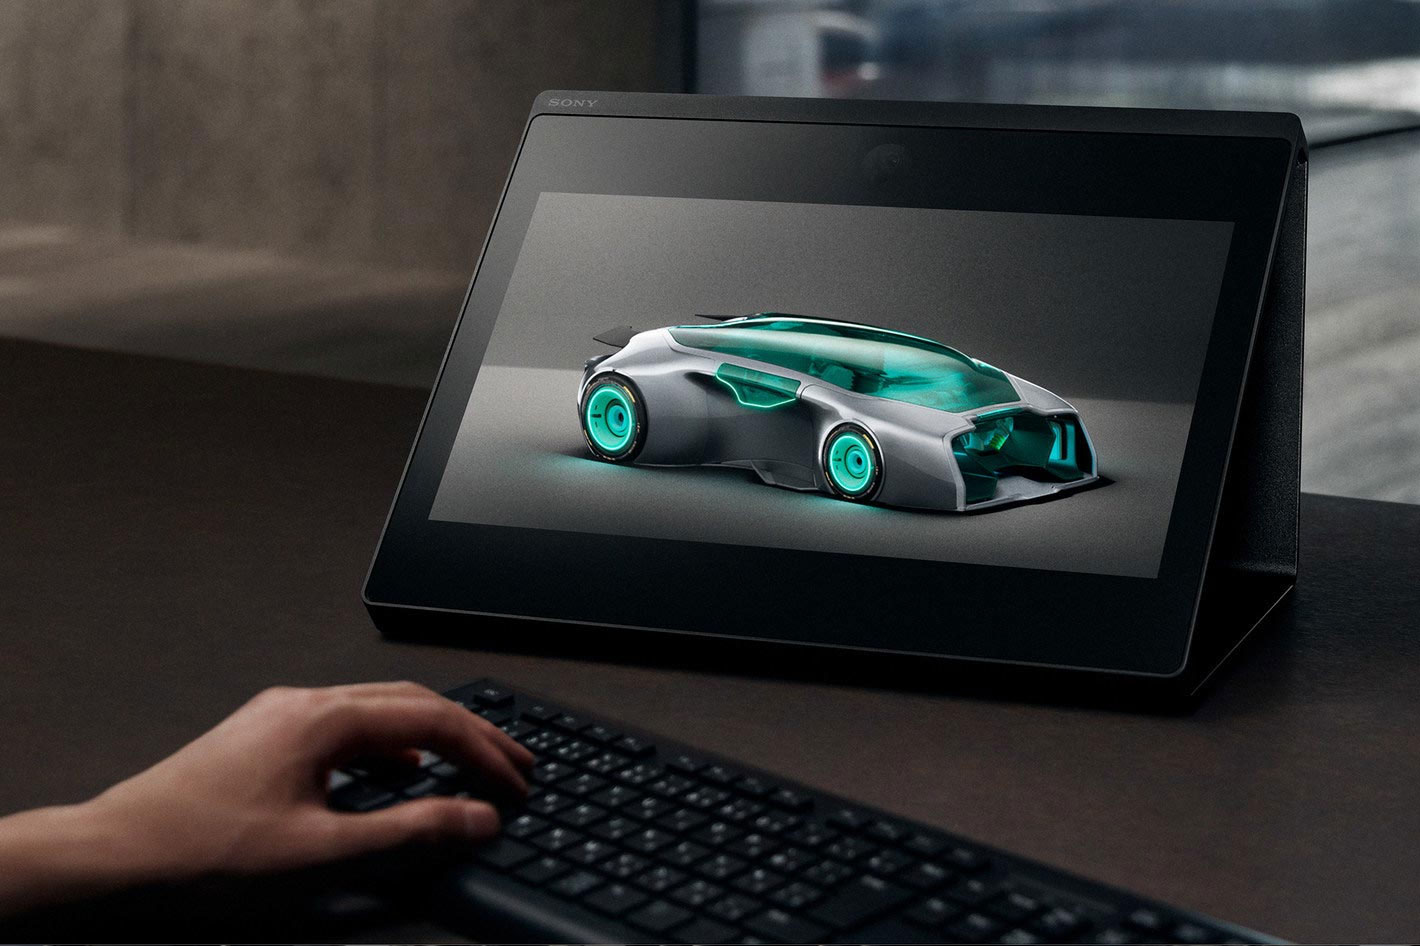 Acer SpatialLabs: 3D without glasses… on a notebook